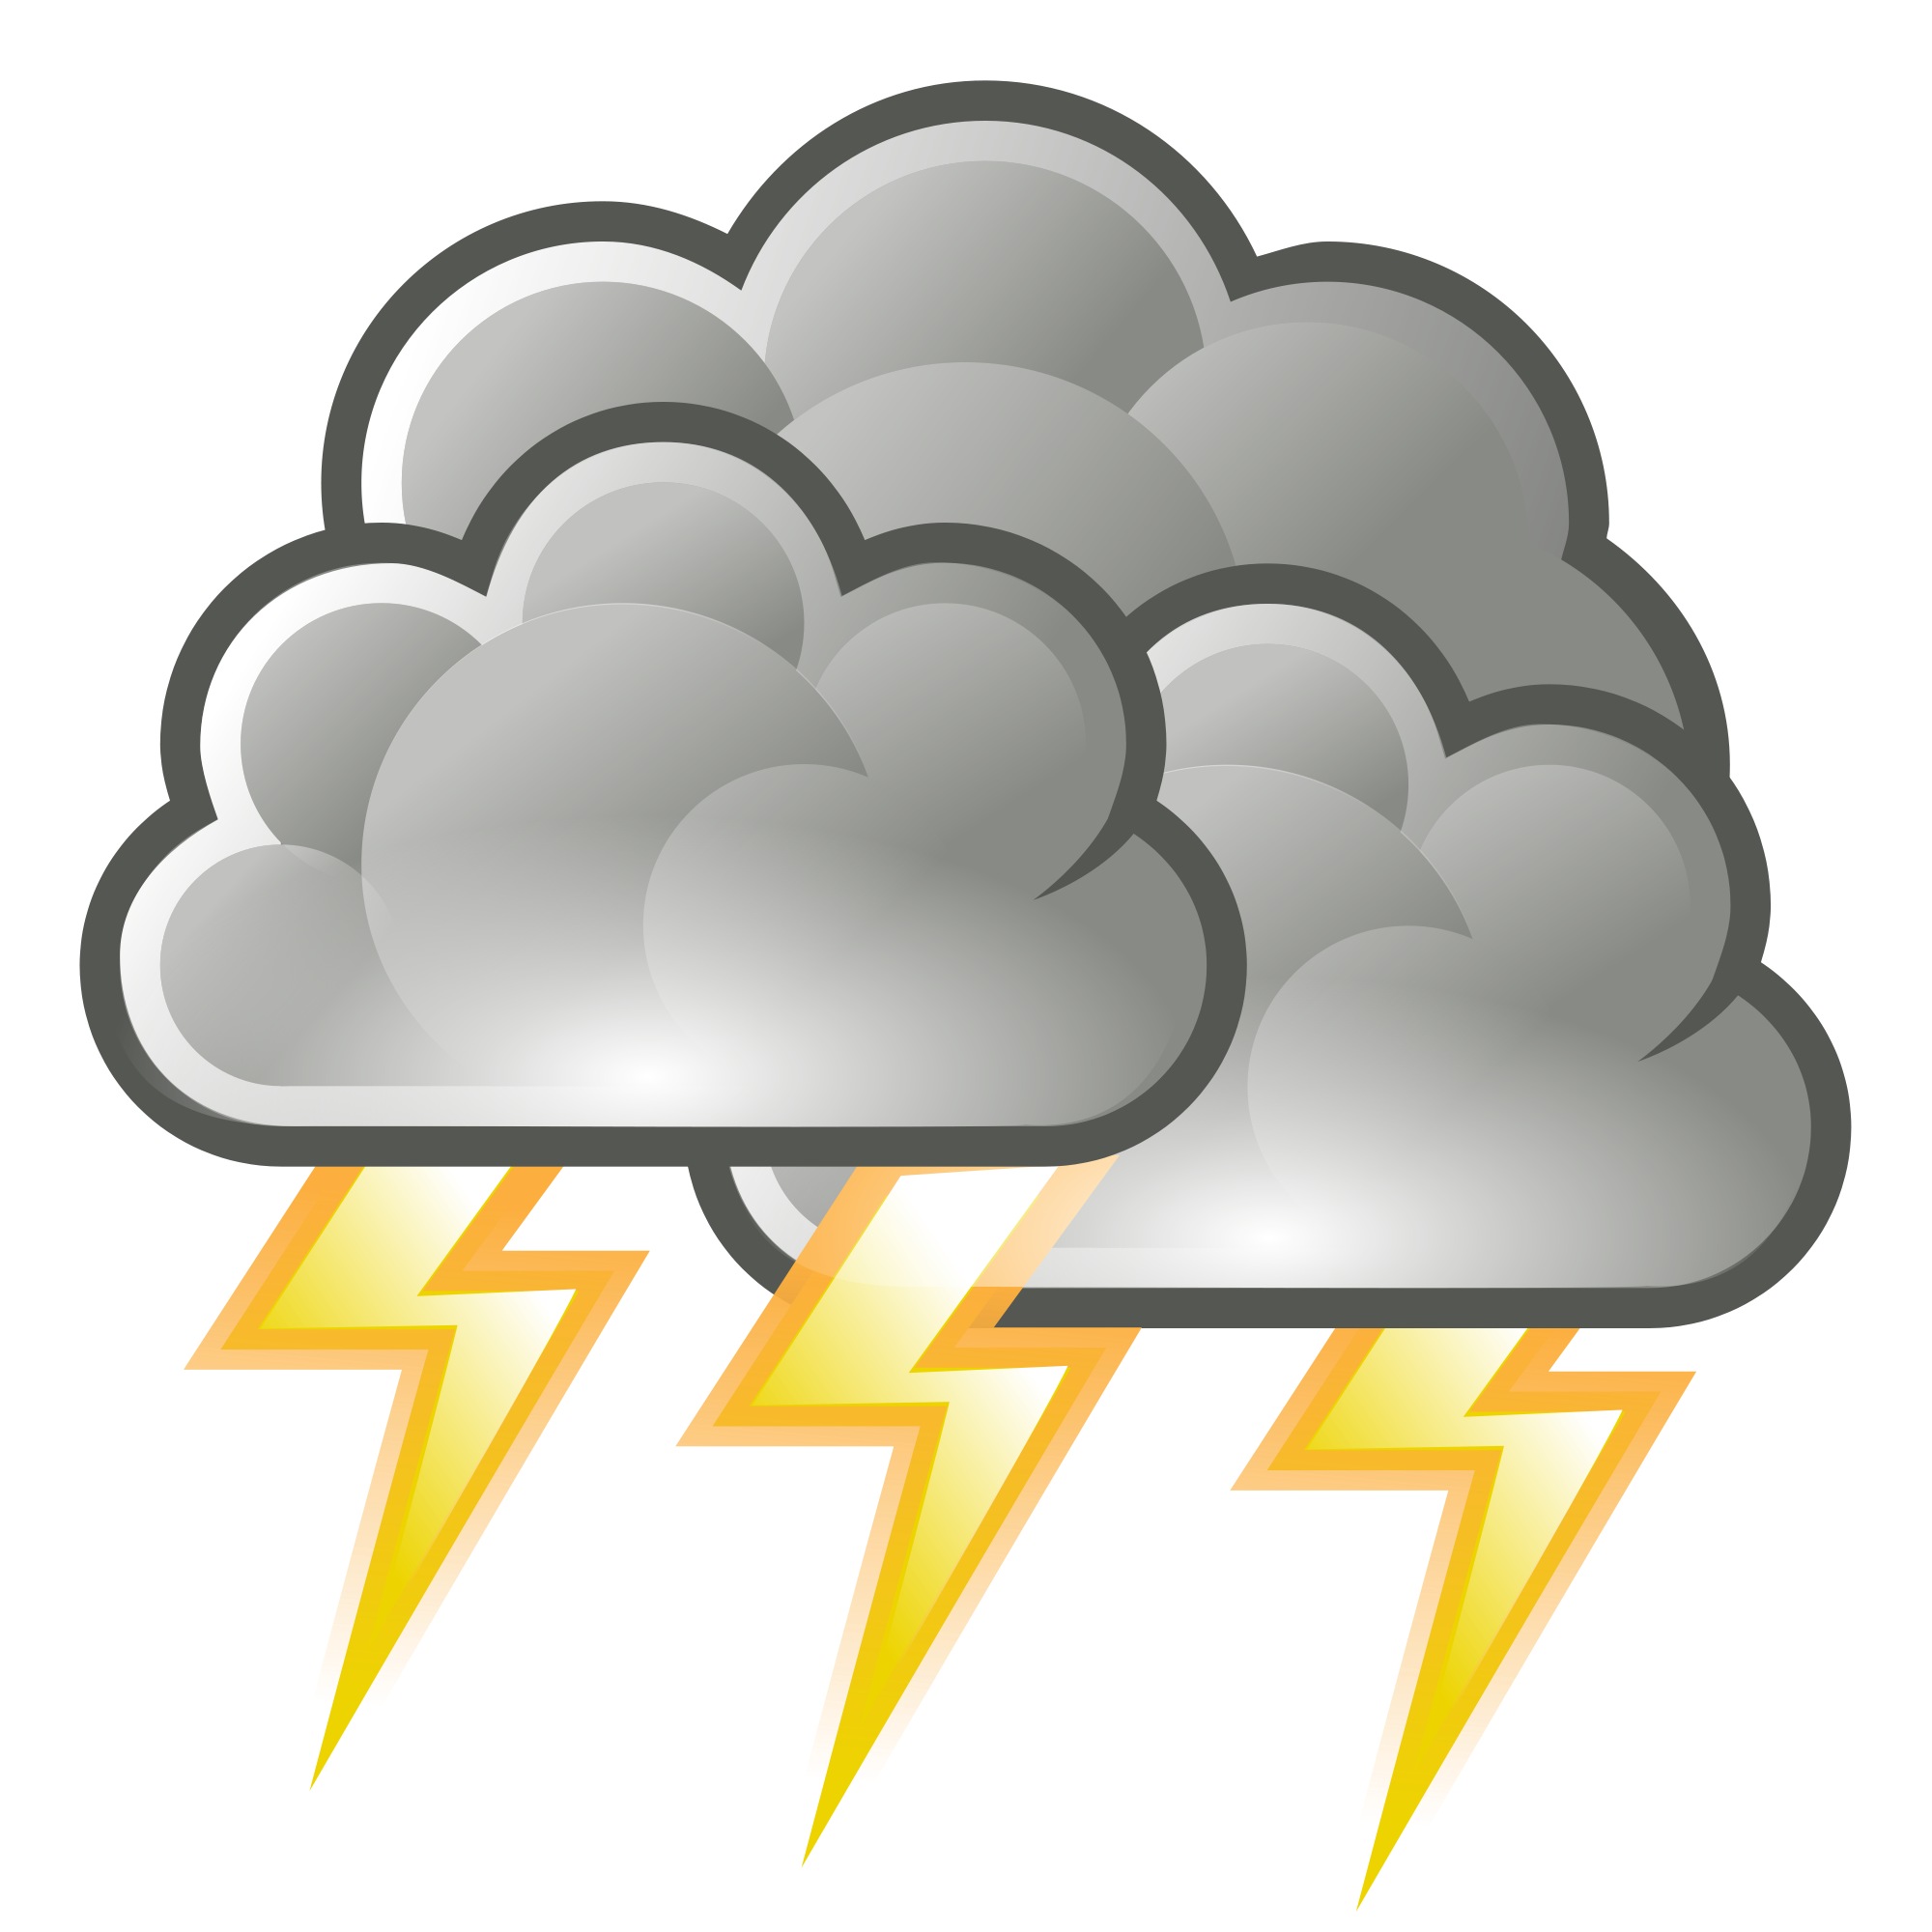 Hurricane clipart tornado warning. File weather violent storm